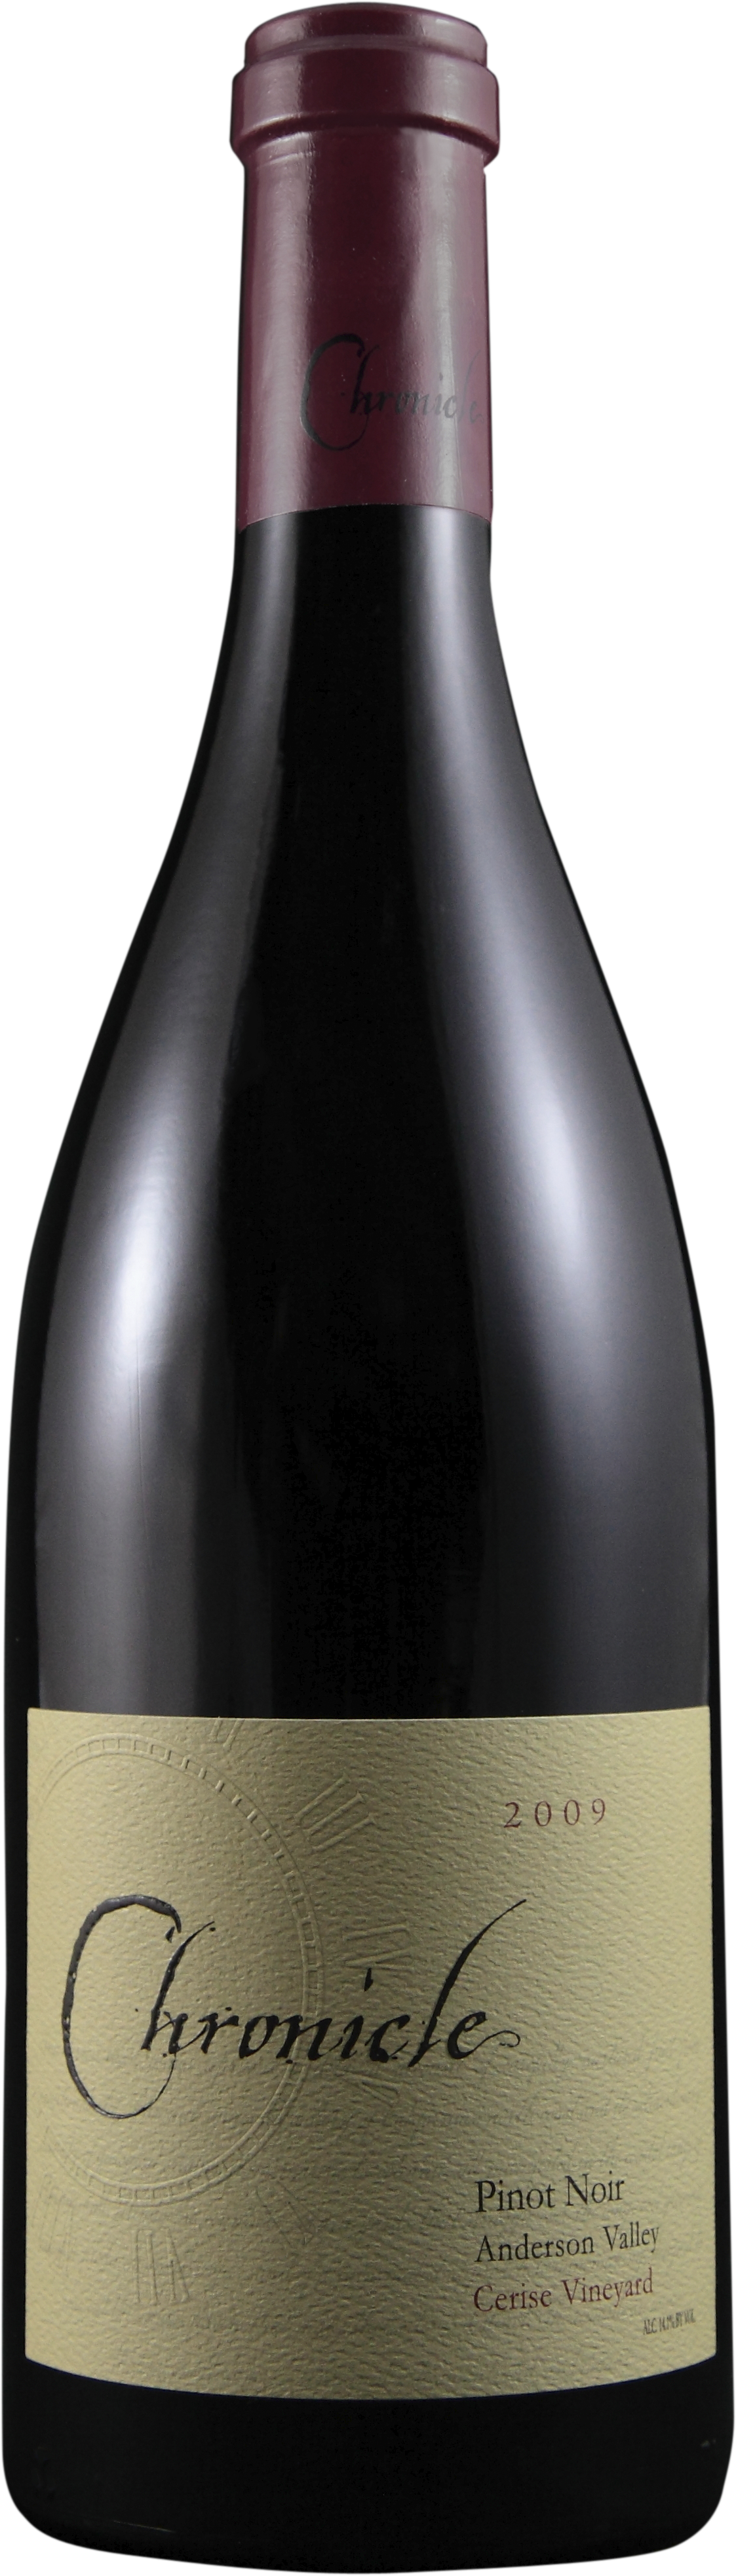 Chornicle Bottle PNG Image